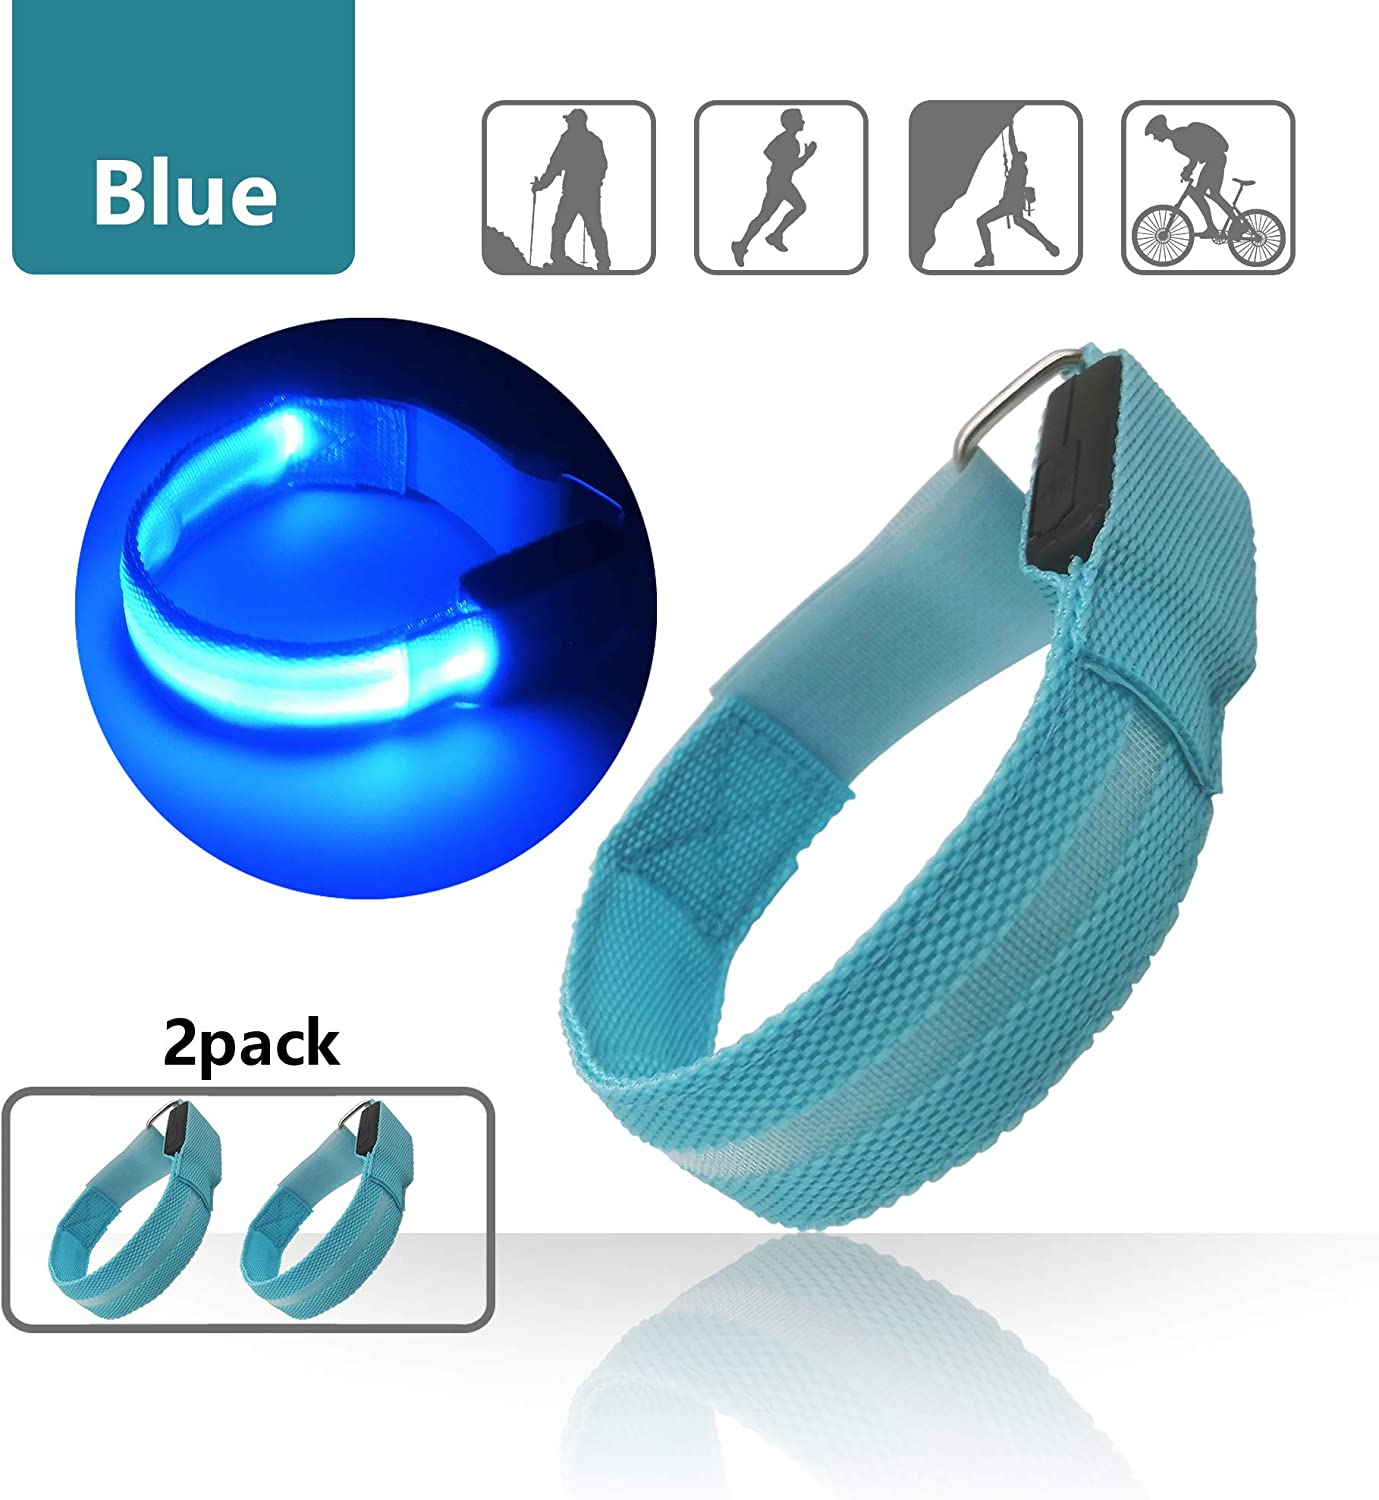 LED Armband for Running Cycling Exercising Glow Light up in Dark Night Running Gear Safety Reflective Sports Event Wristbands with USB Charging Cord